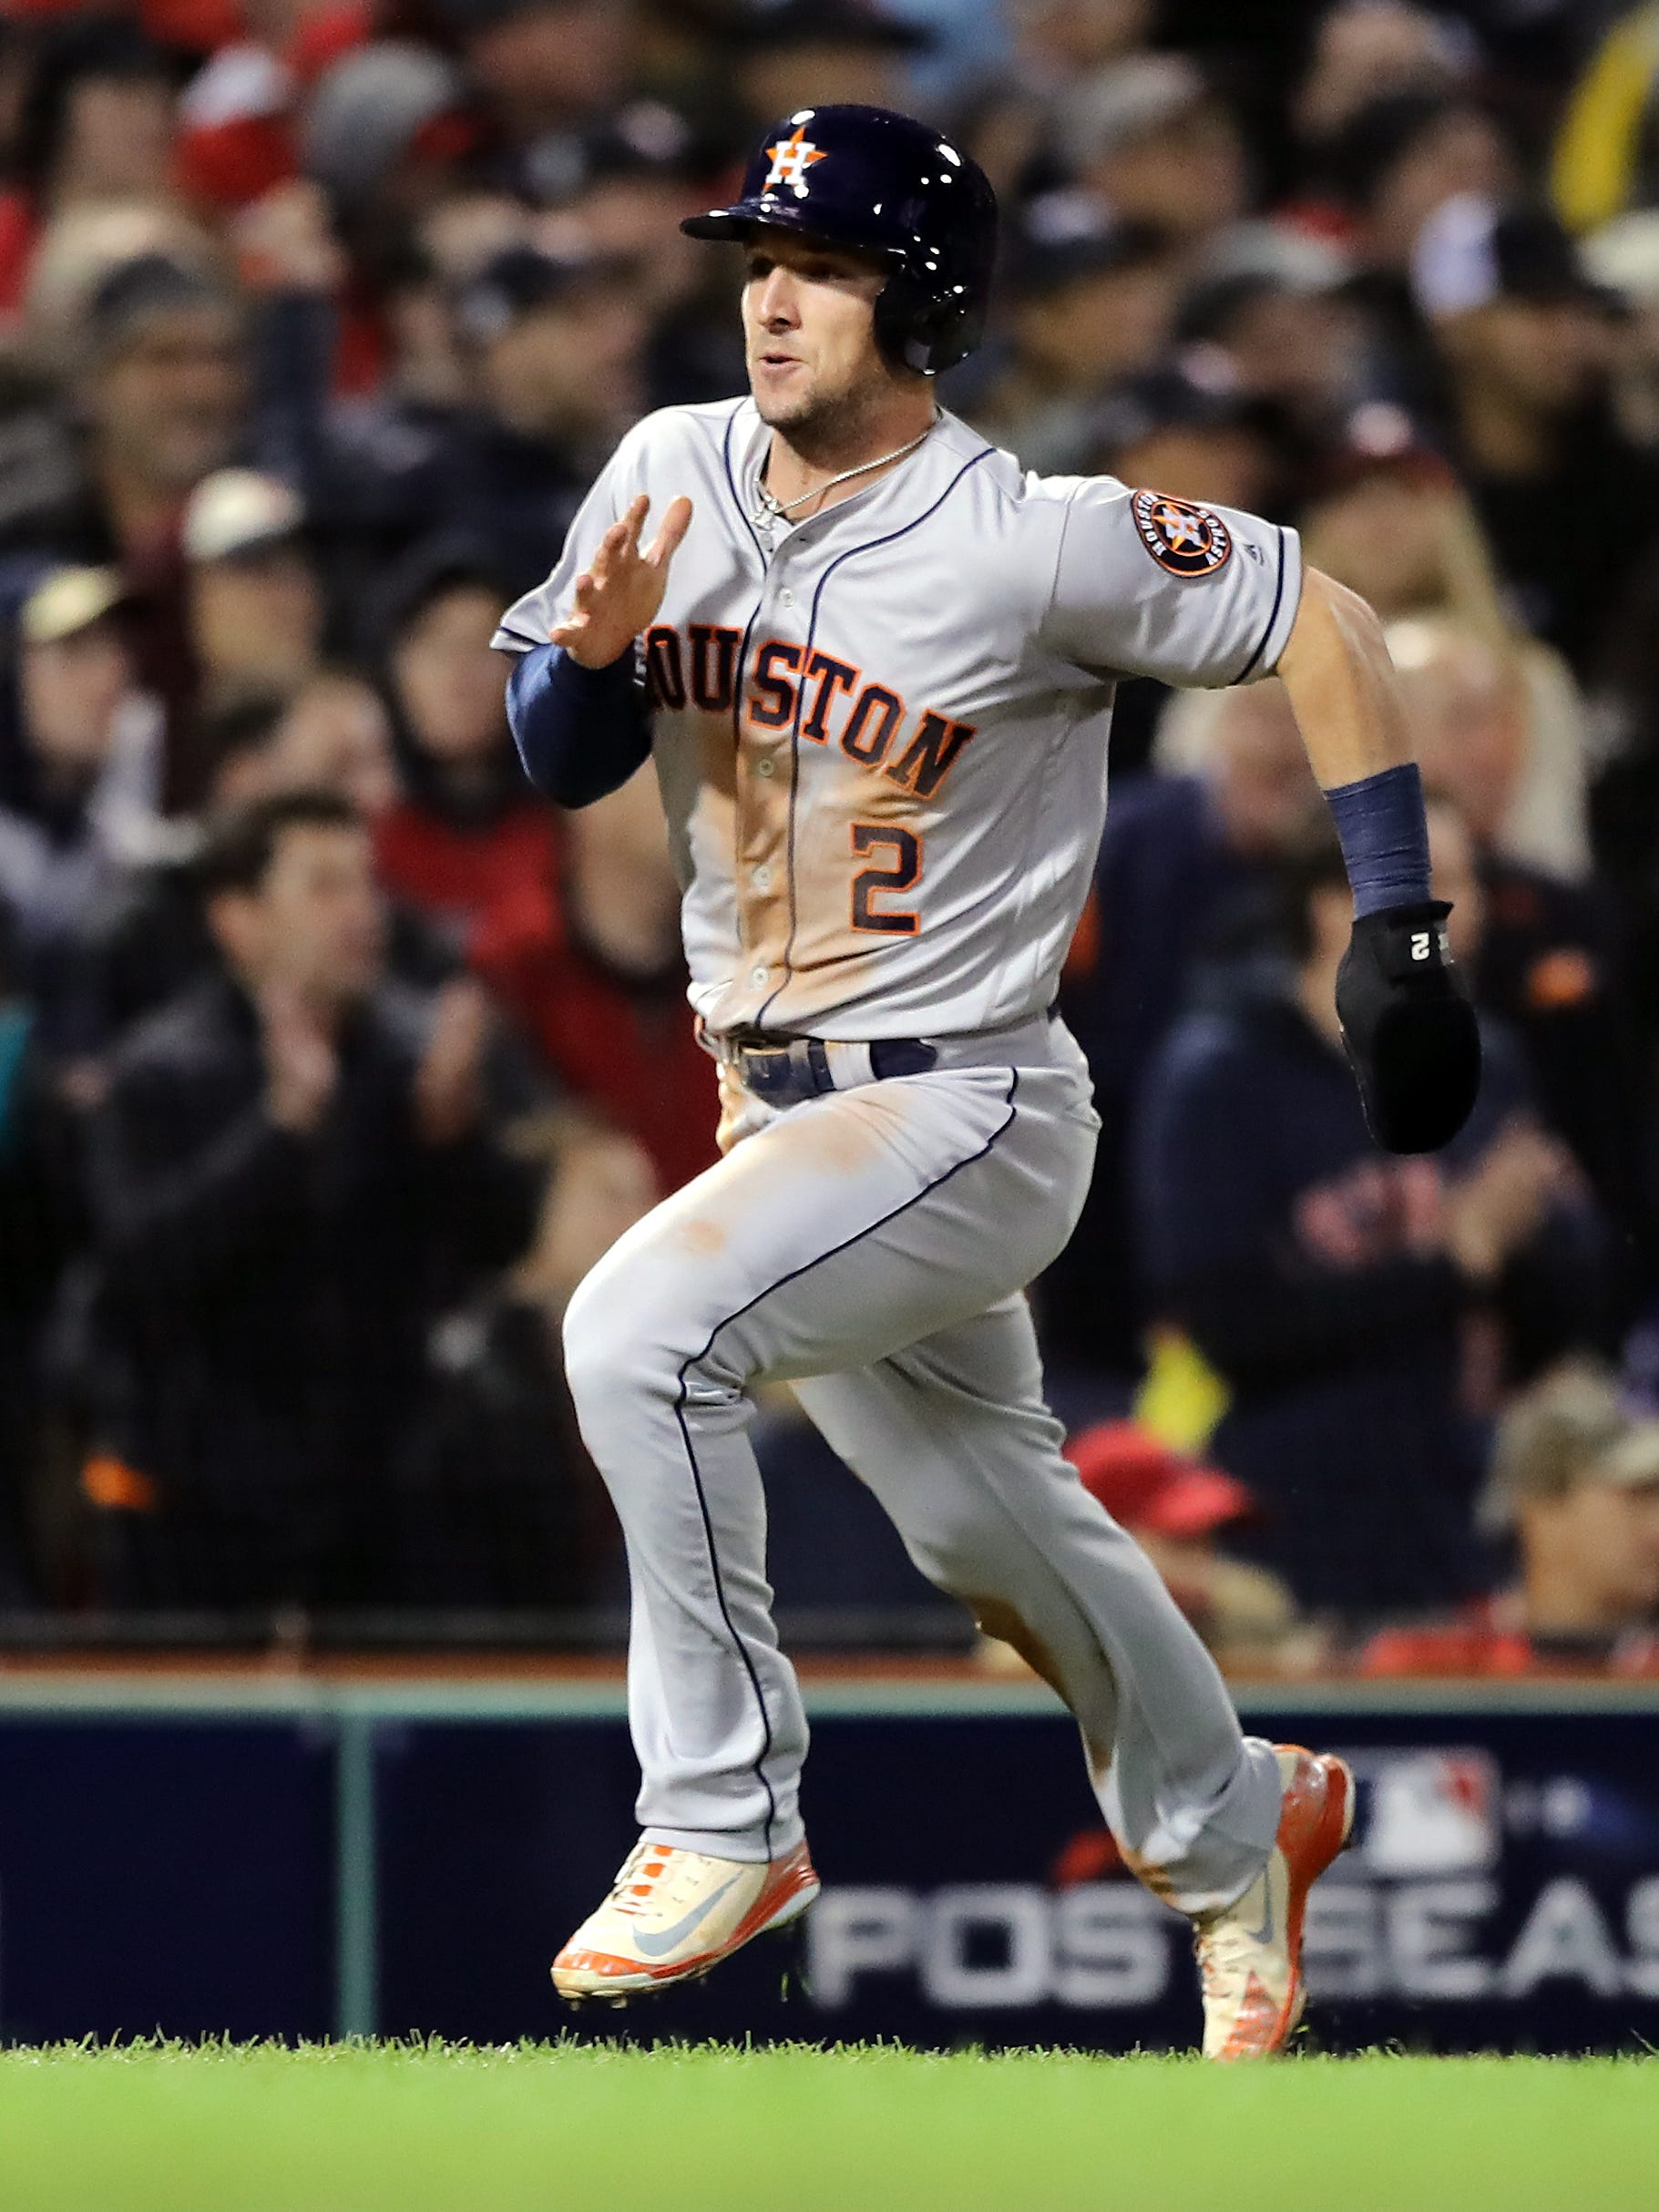 Bregman scores a run in Game 1 against the Red Sox.